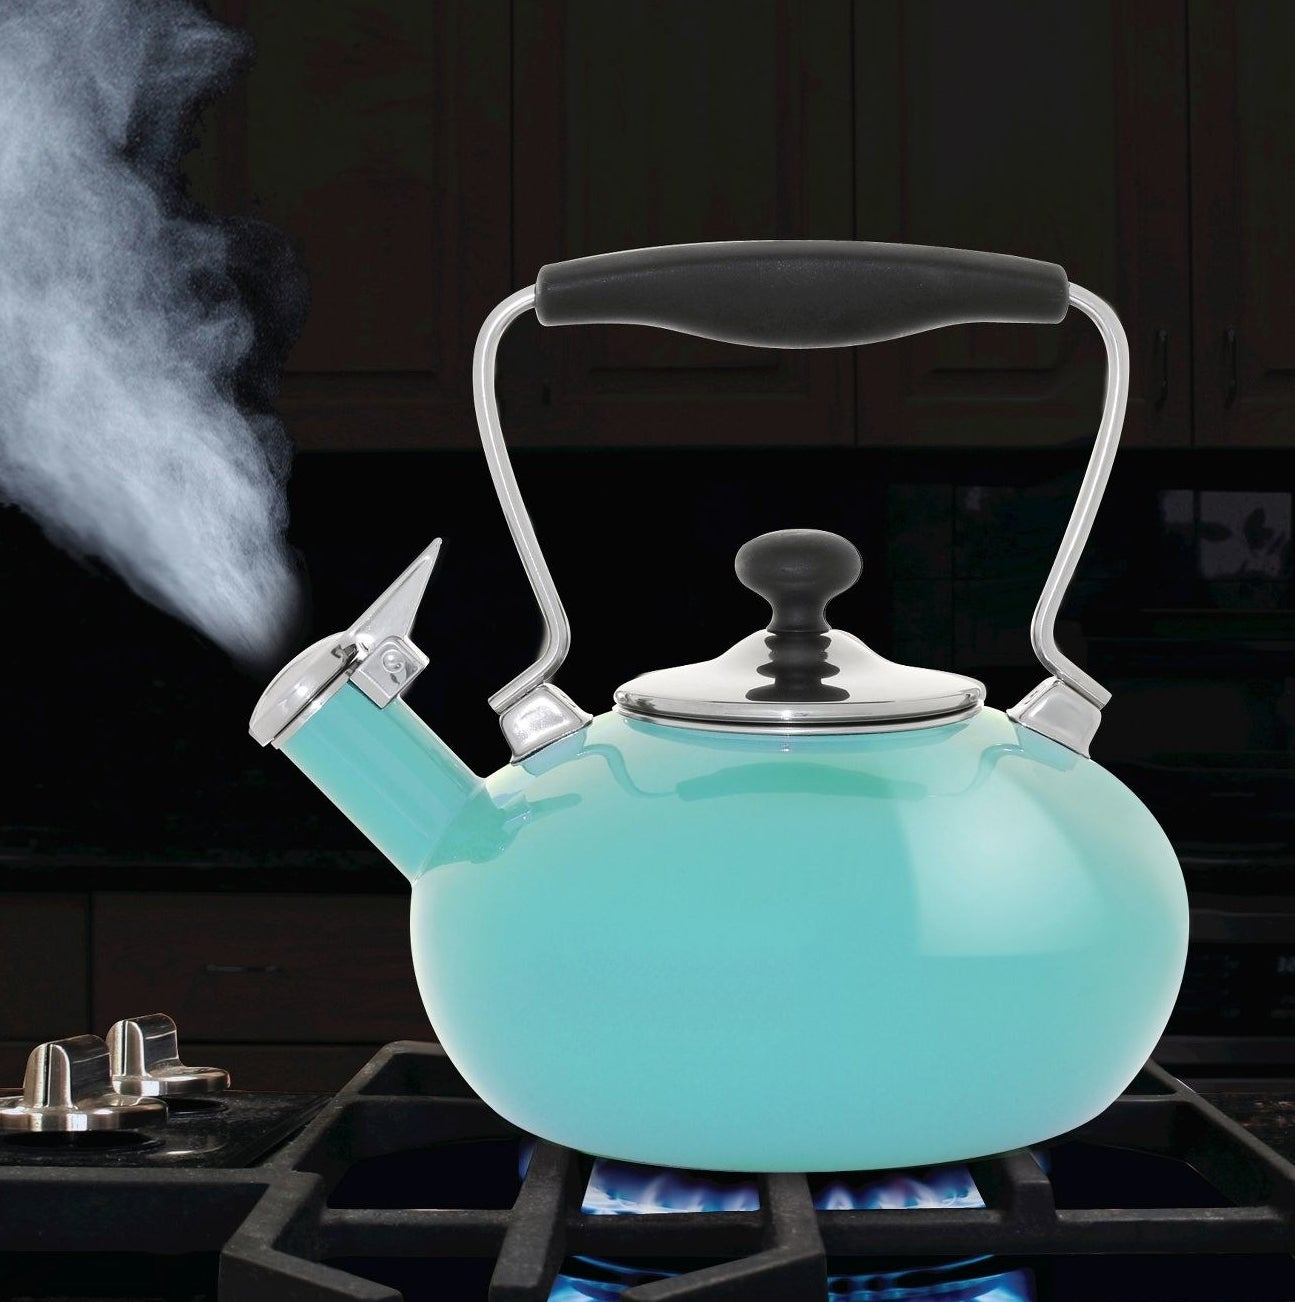 Aqua tea kettle with black and stainless steel details